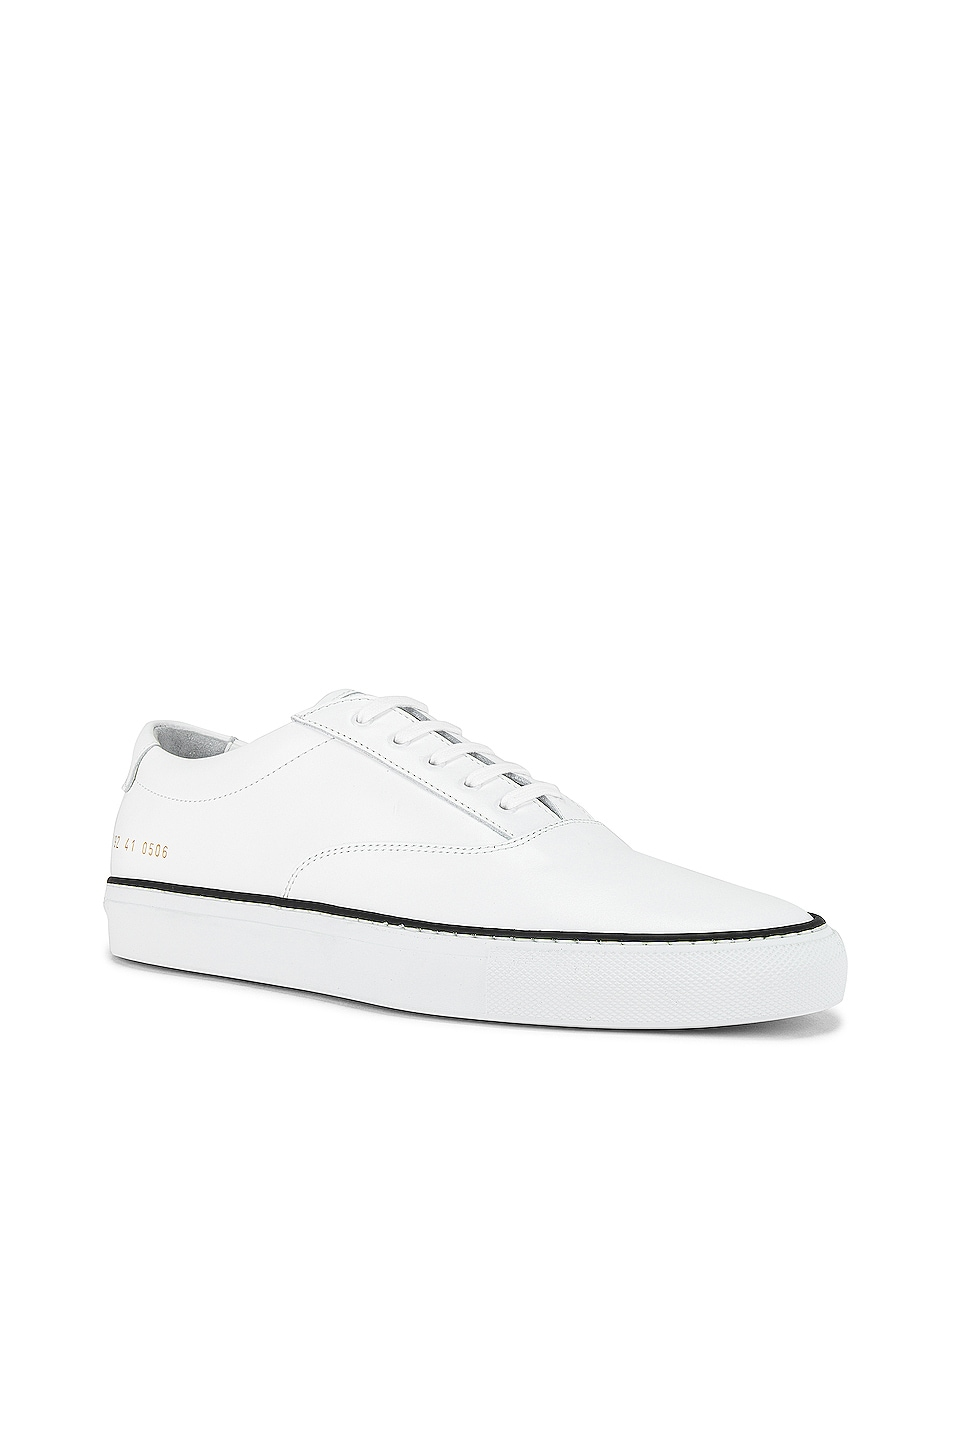 Image 1 of Common Projects Five Hole Sneaker in White